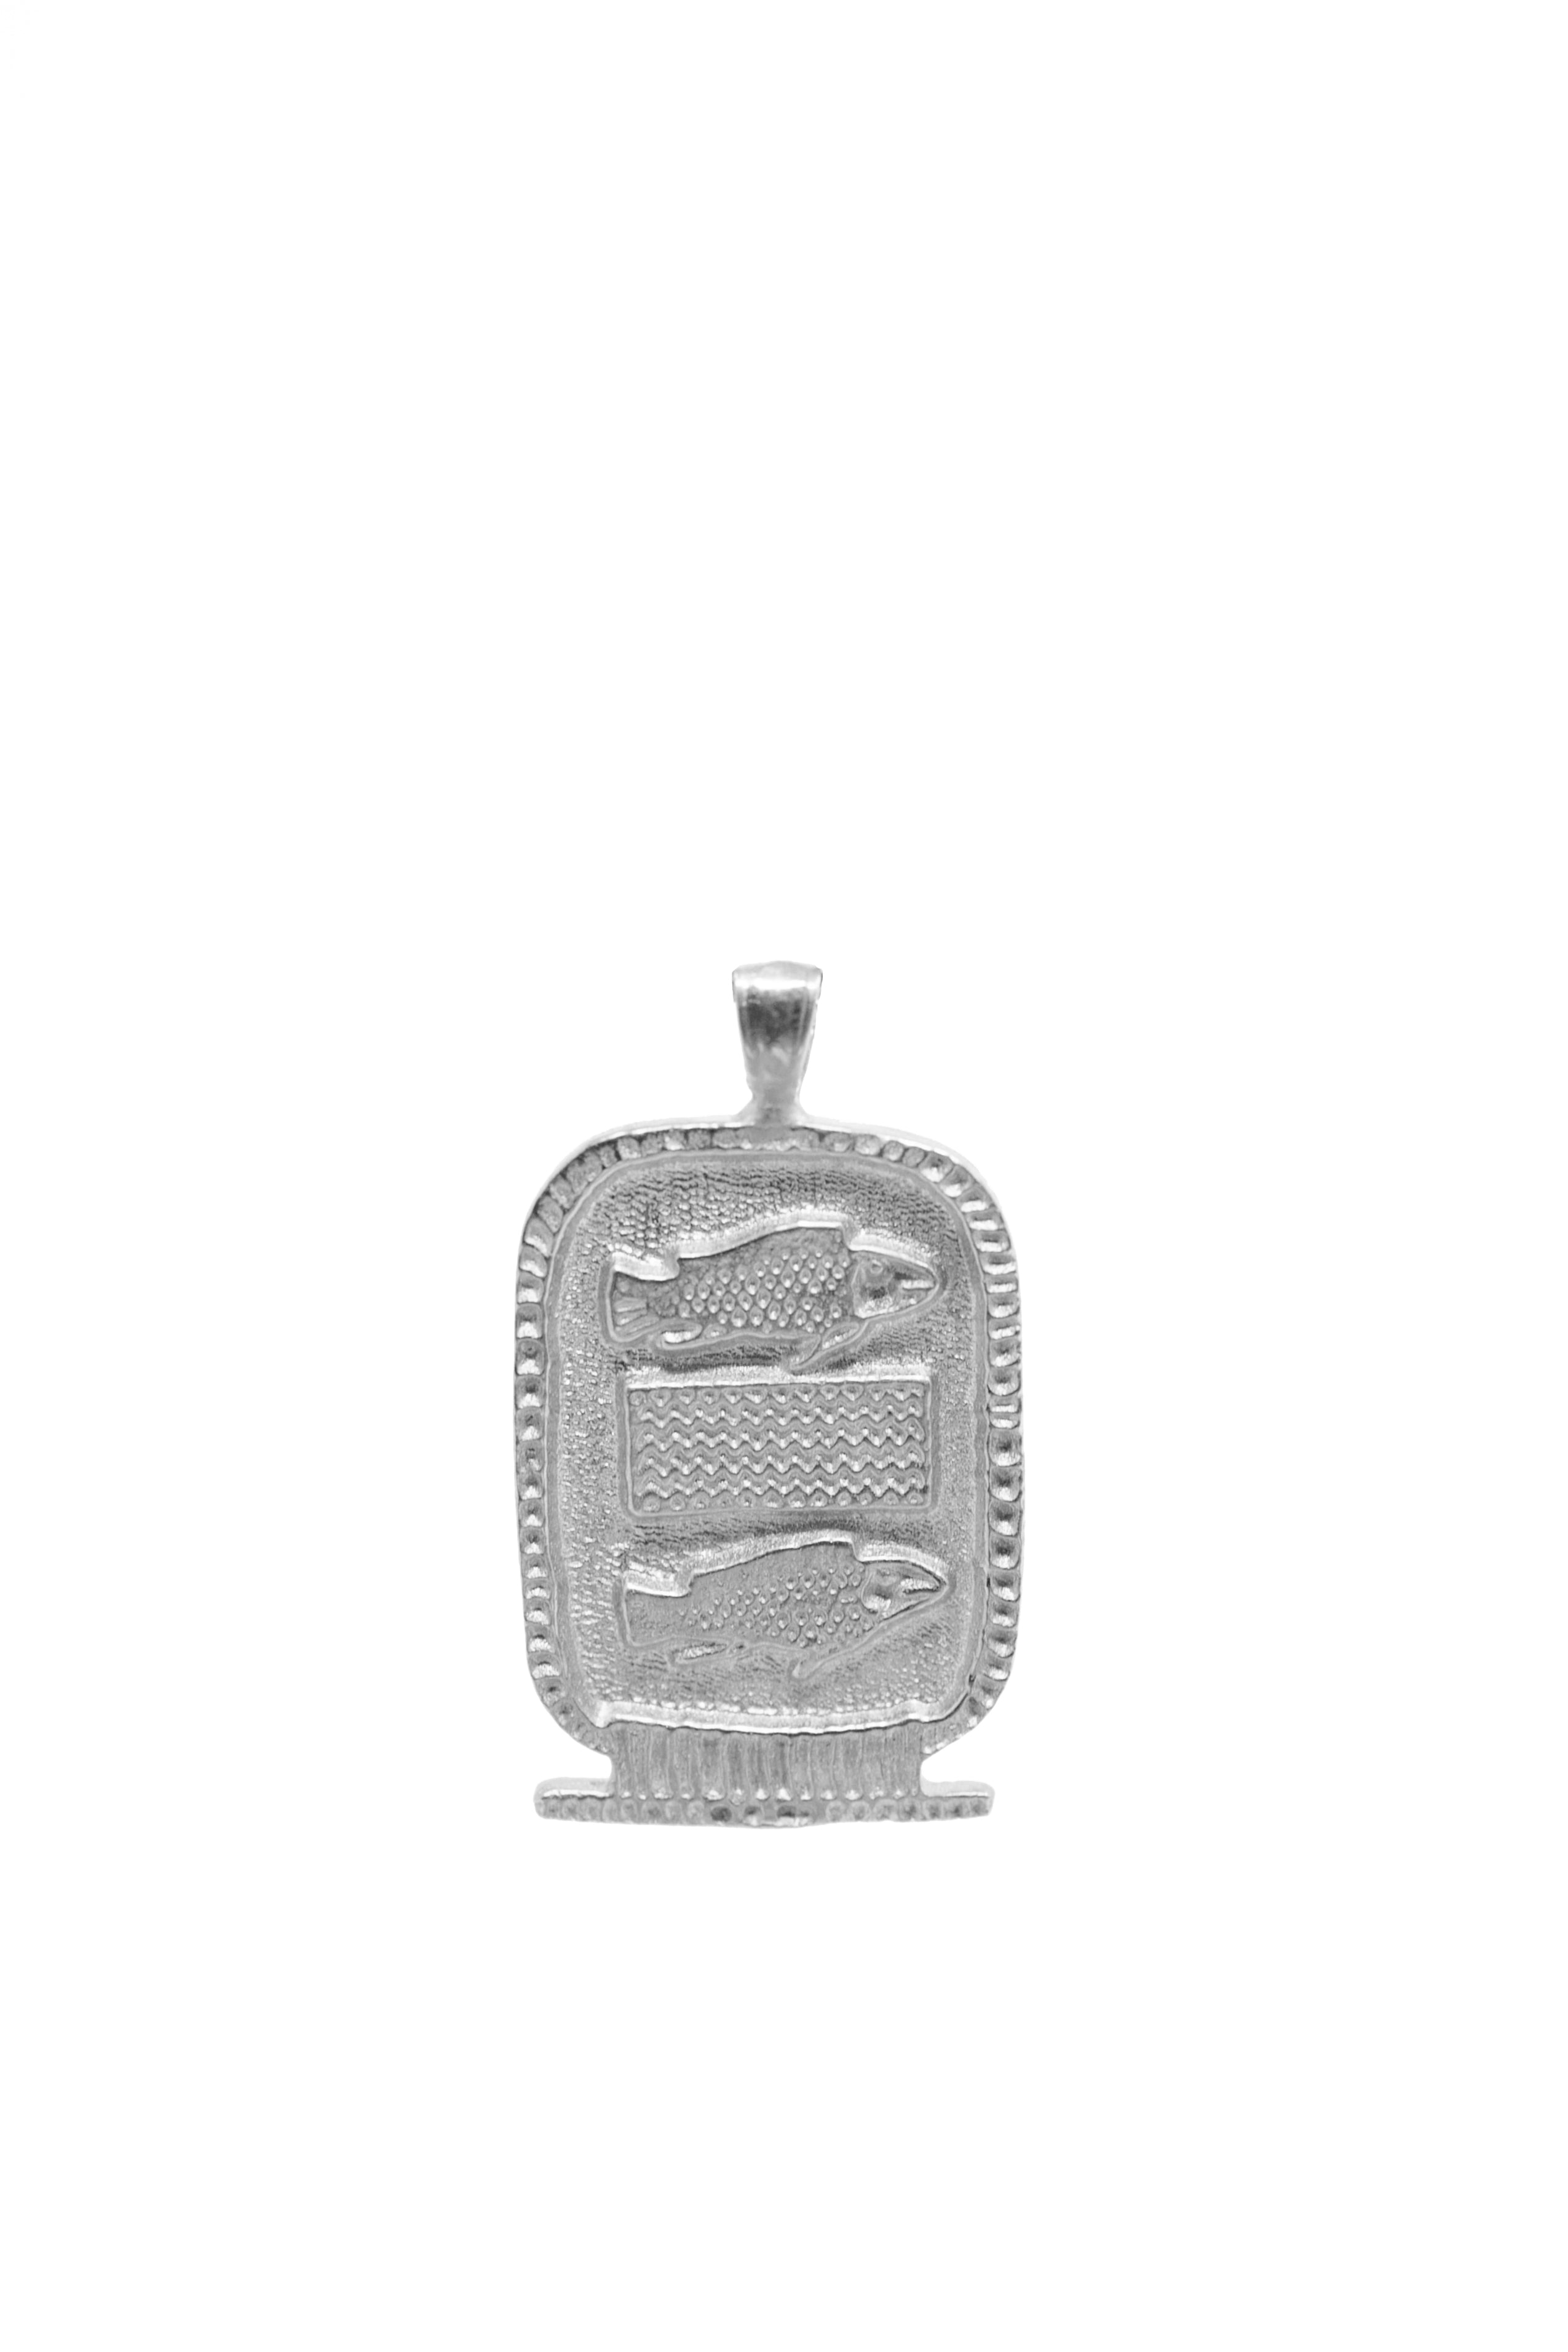 THE CARTOUCHE Zodiac Pendant in Silver